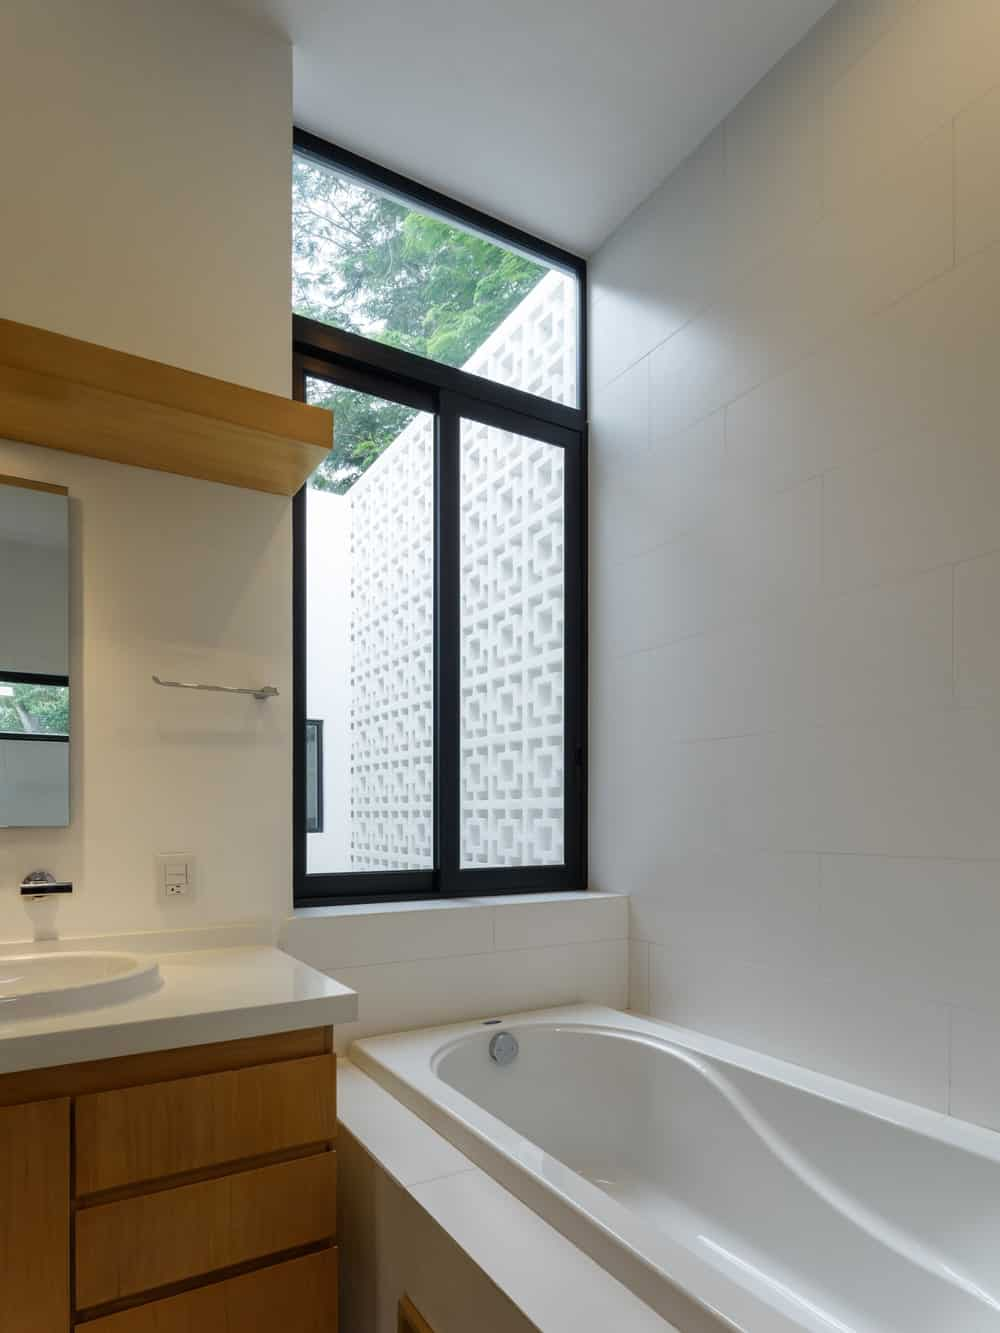 The bathroom has a large window above the head of the bathtub beside the wooden vanity with wooden drawers.